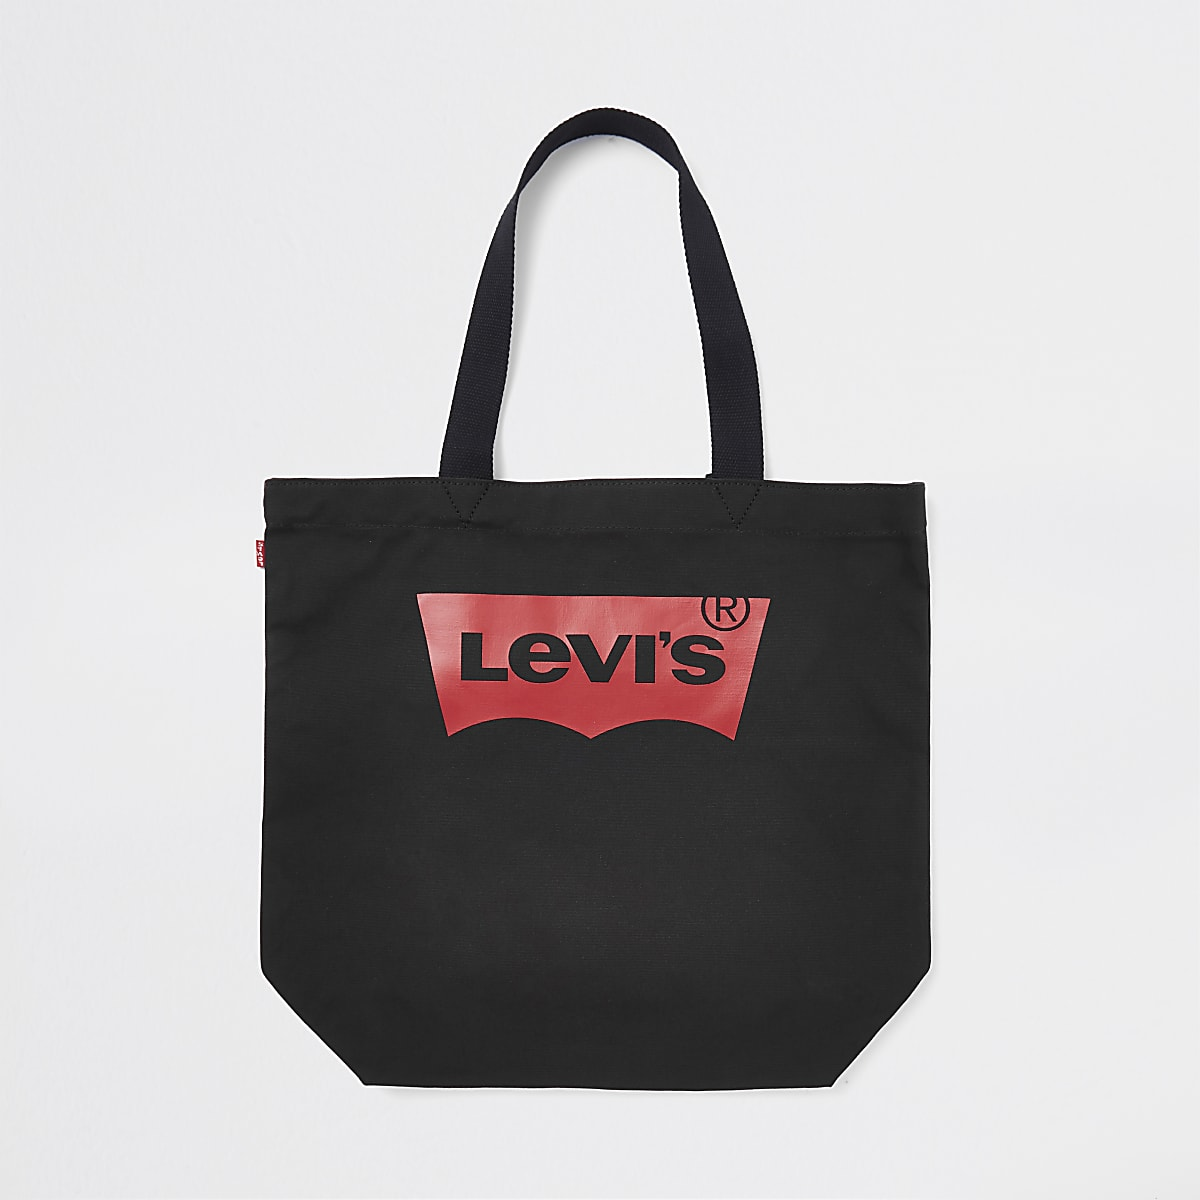 83570aad71f Home · Men · Bags  Levi s black tote bag. Levi s black tote bag Levi s  black tote ...